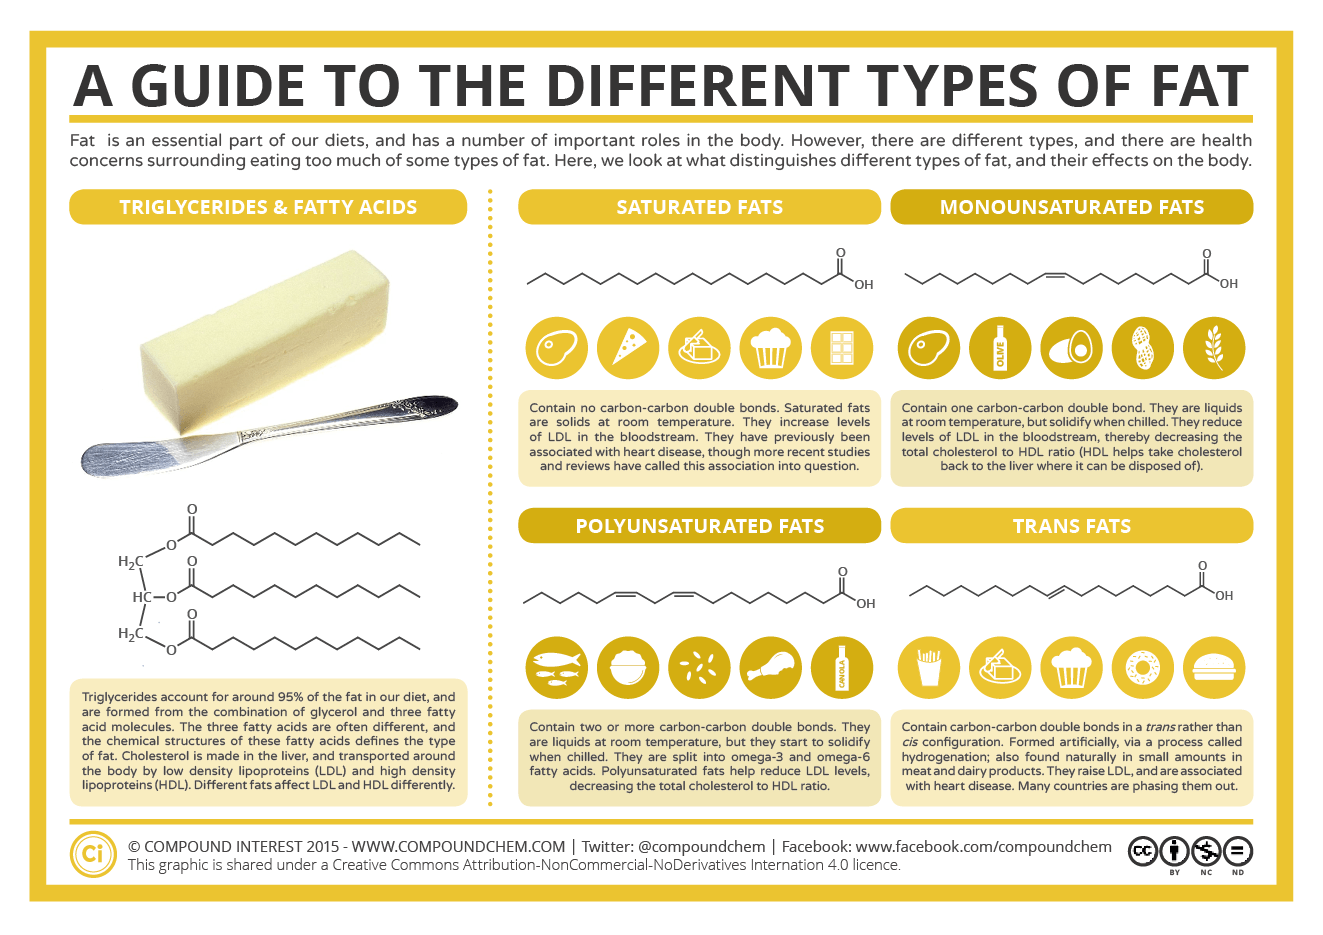 A-Guide-to-Different-Types-of-Fat